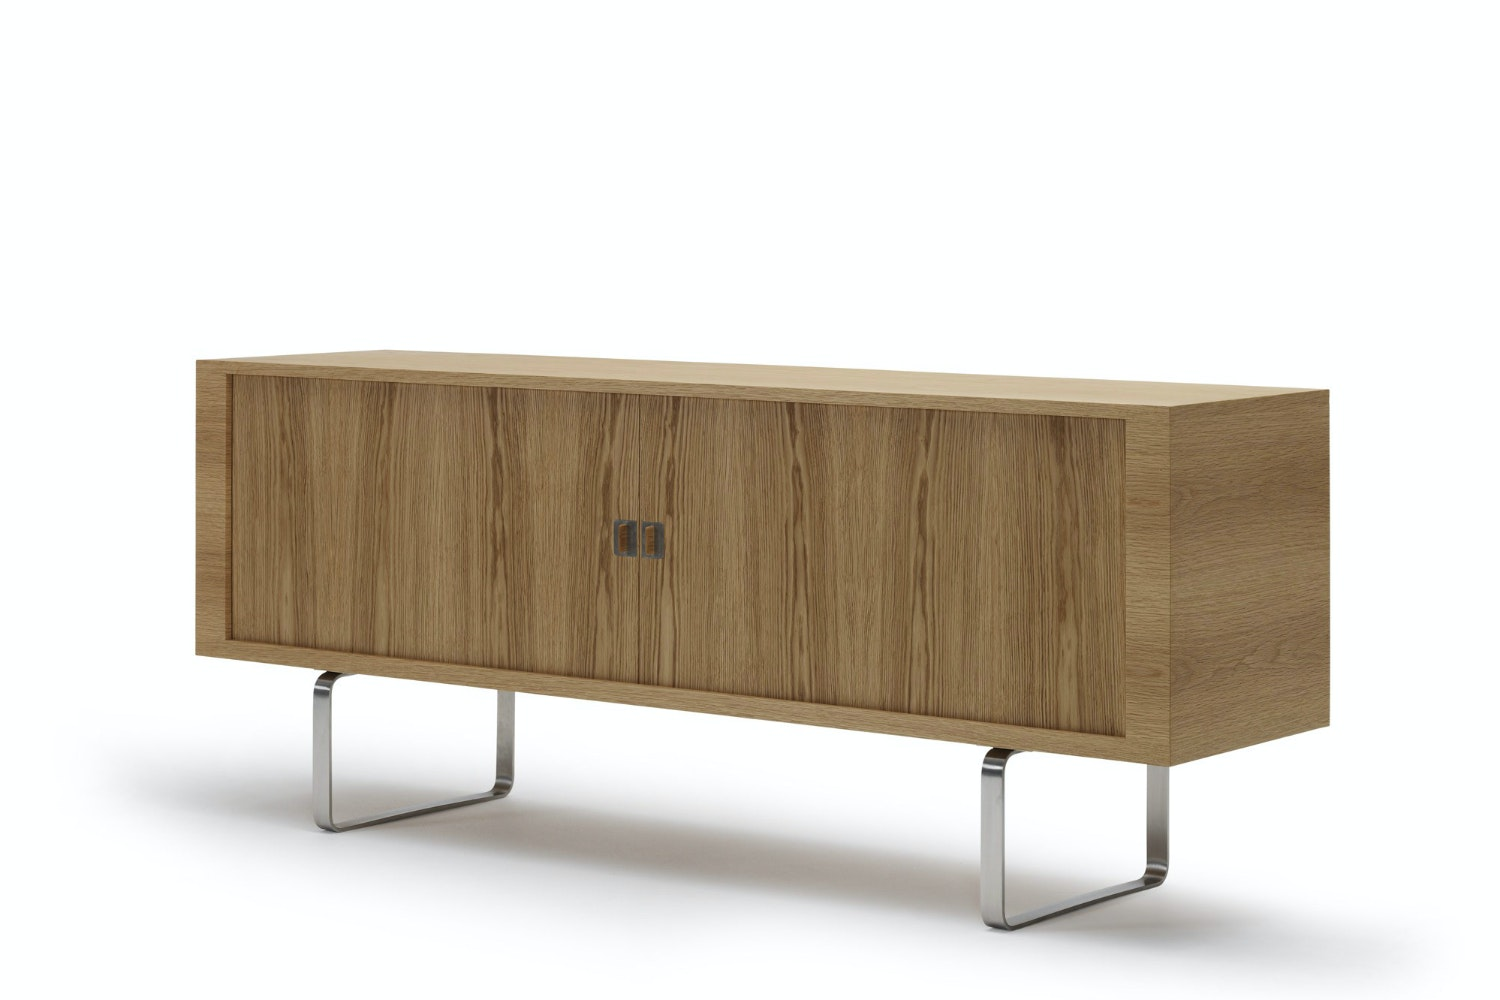 CH825 Credenza by Hans J. Wegner for Carl Hansen & Son